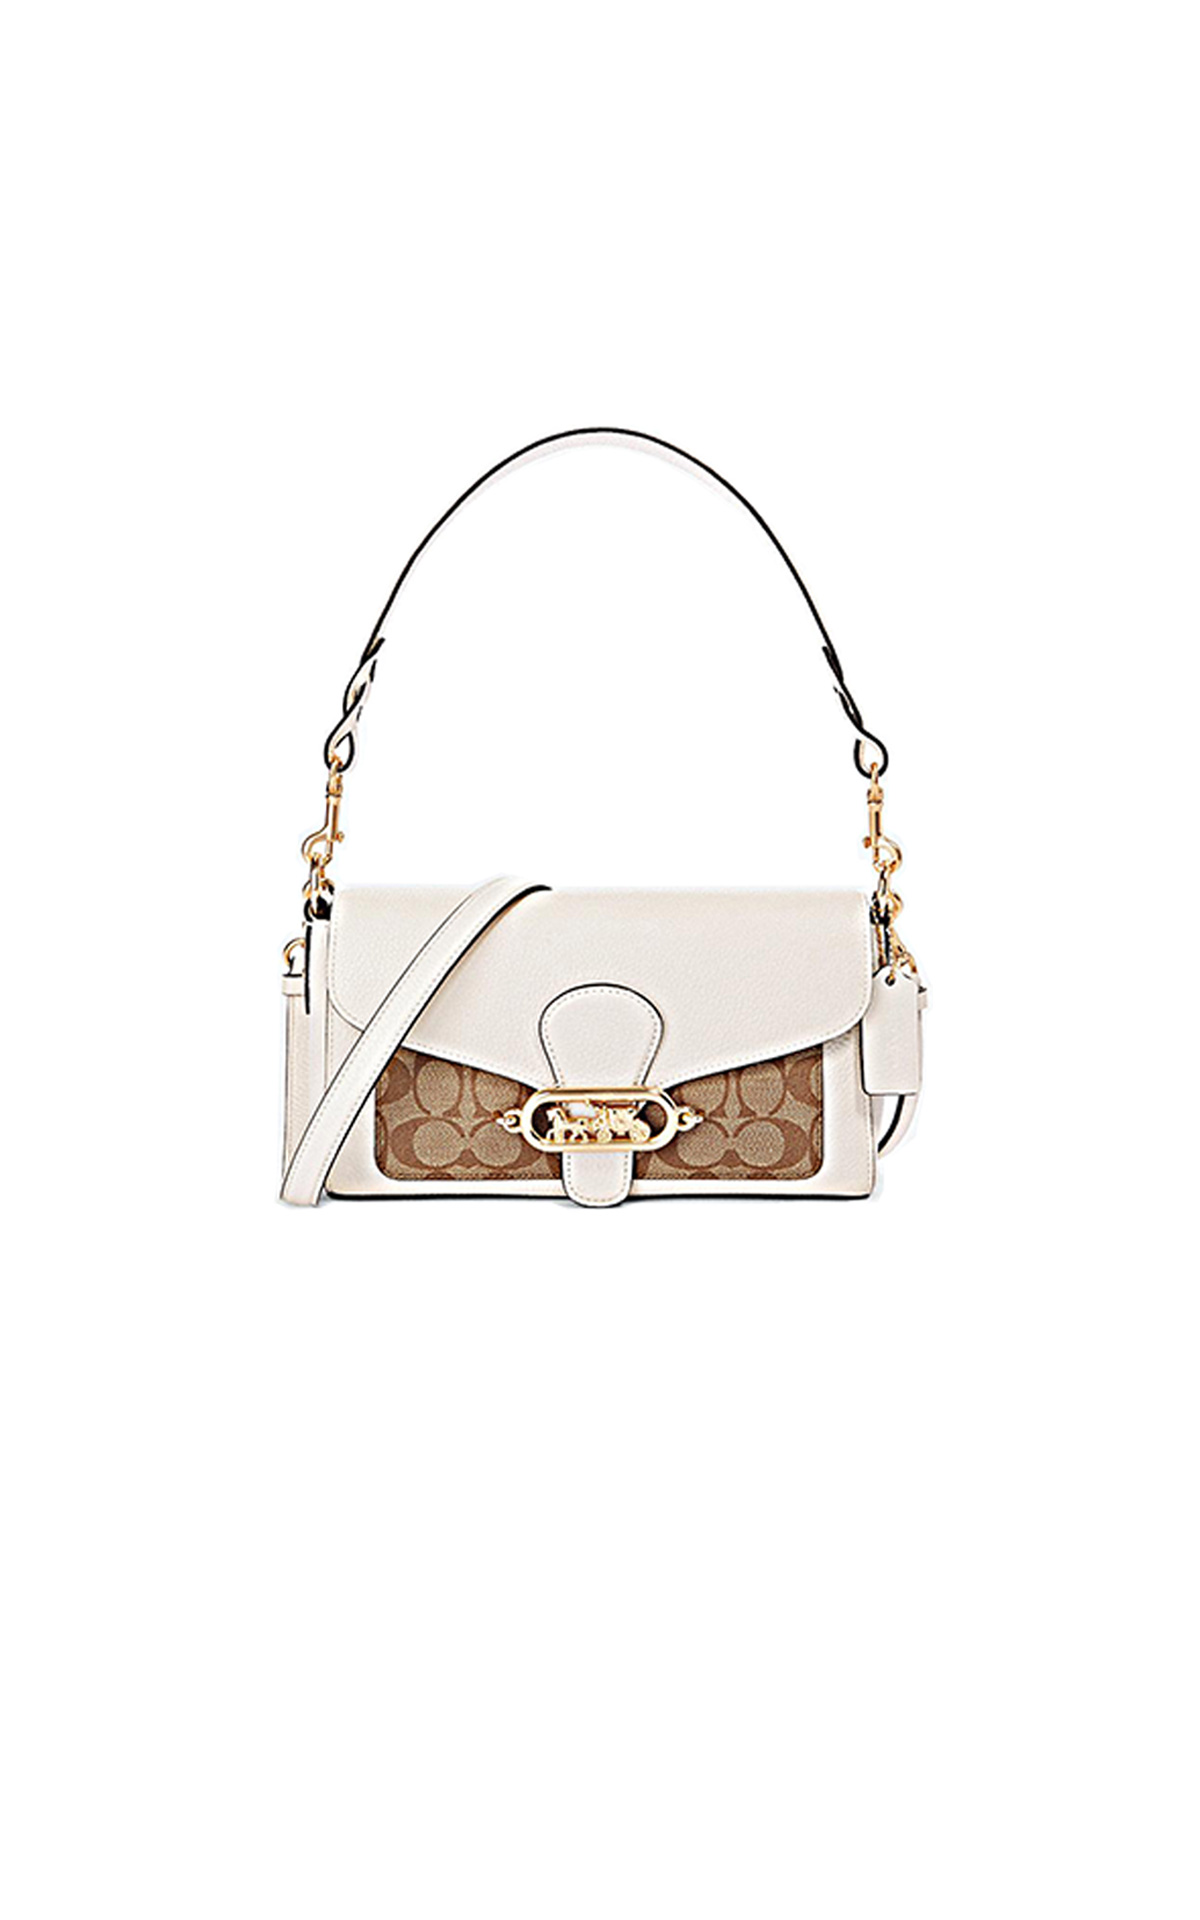 Brown and white Jade small bag Jennifer Lopez Coach